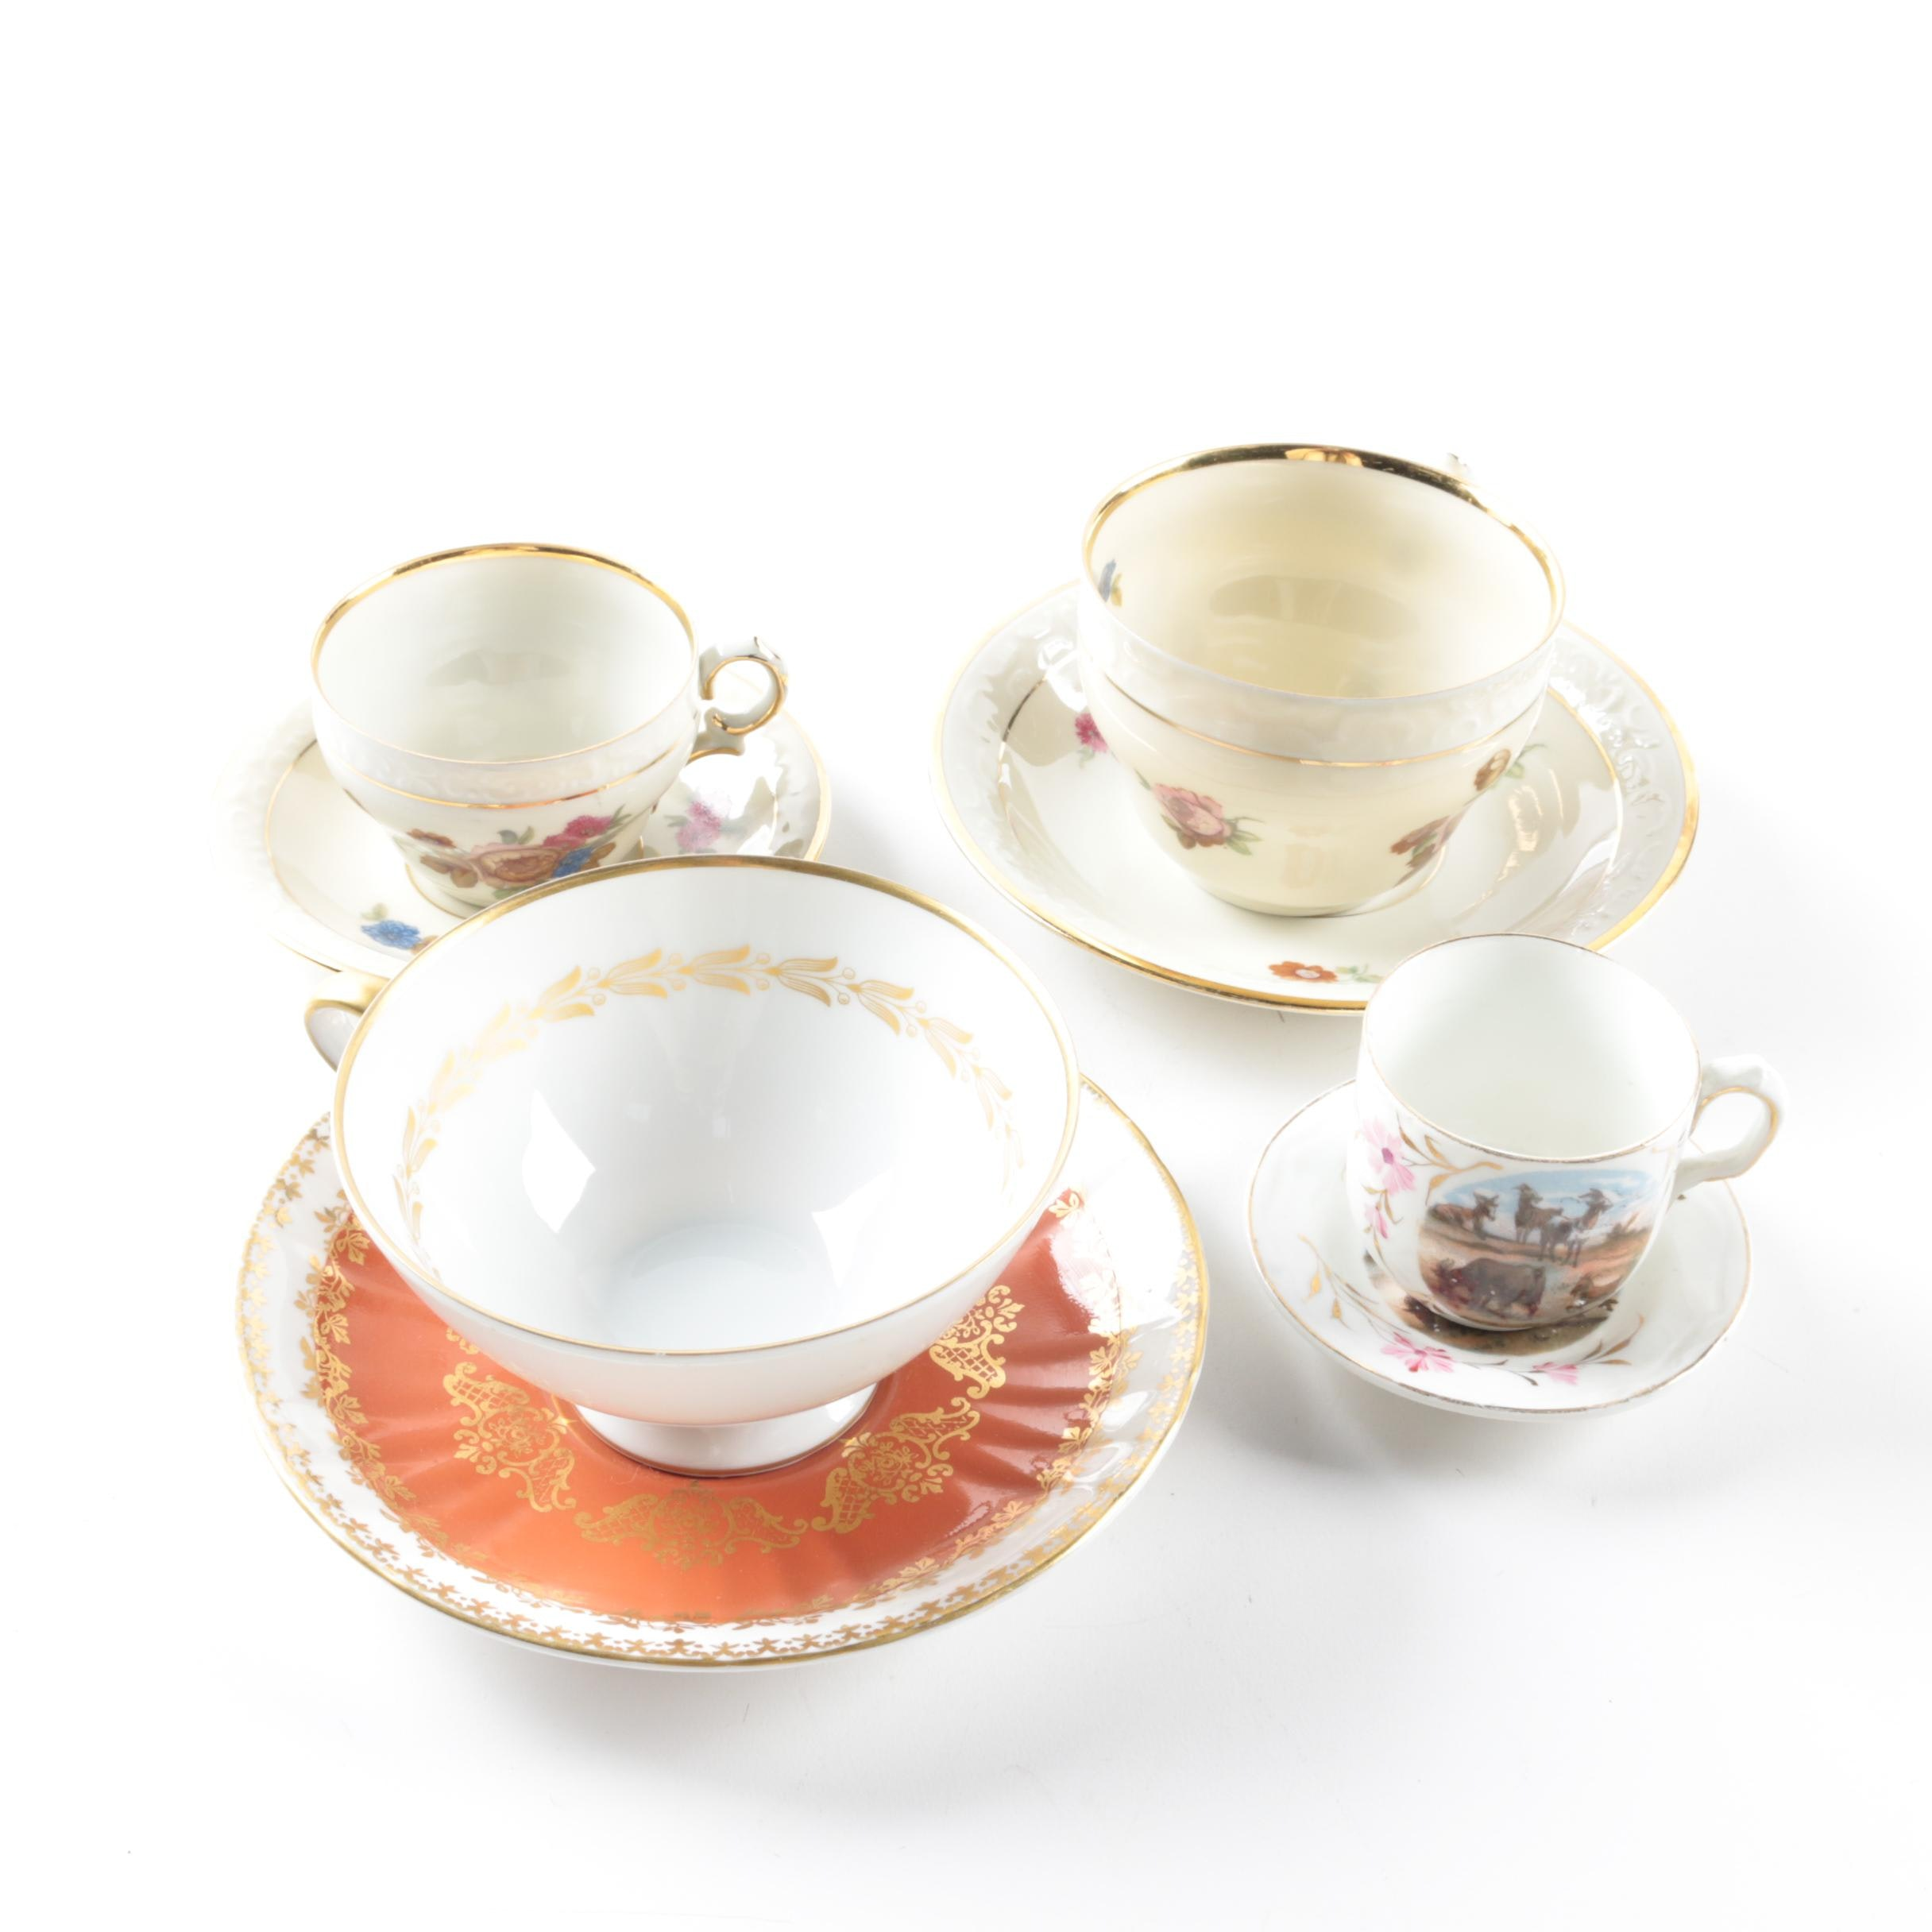 Cups and Saucers Featuring Royal Grafton